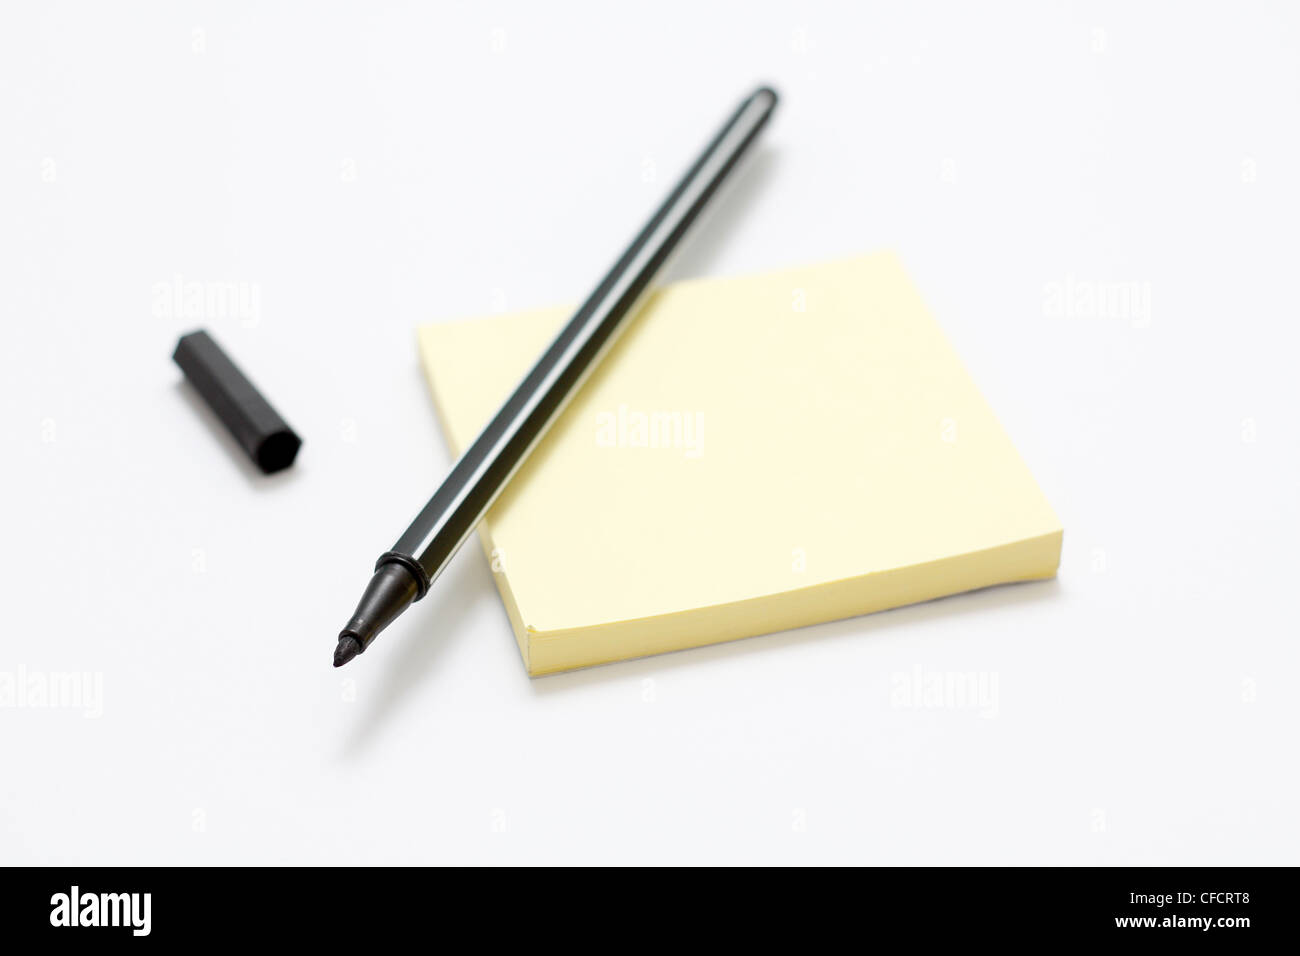 Notepad and pen - Stock Image